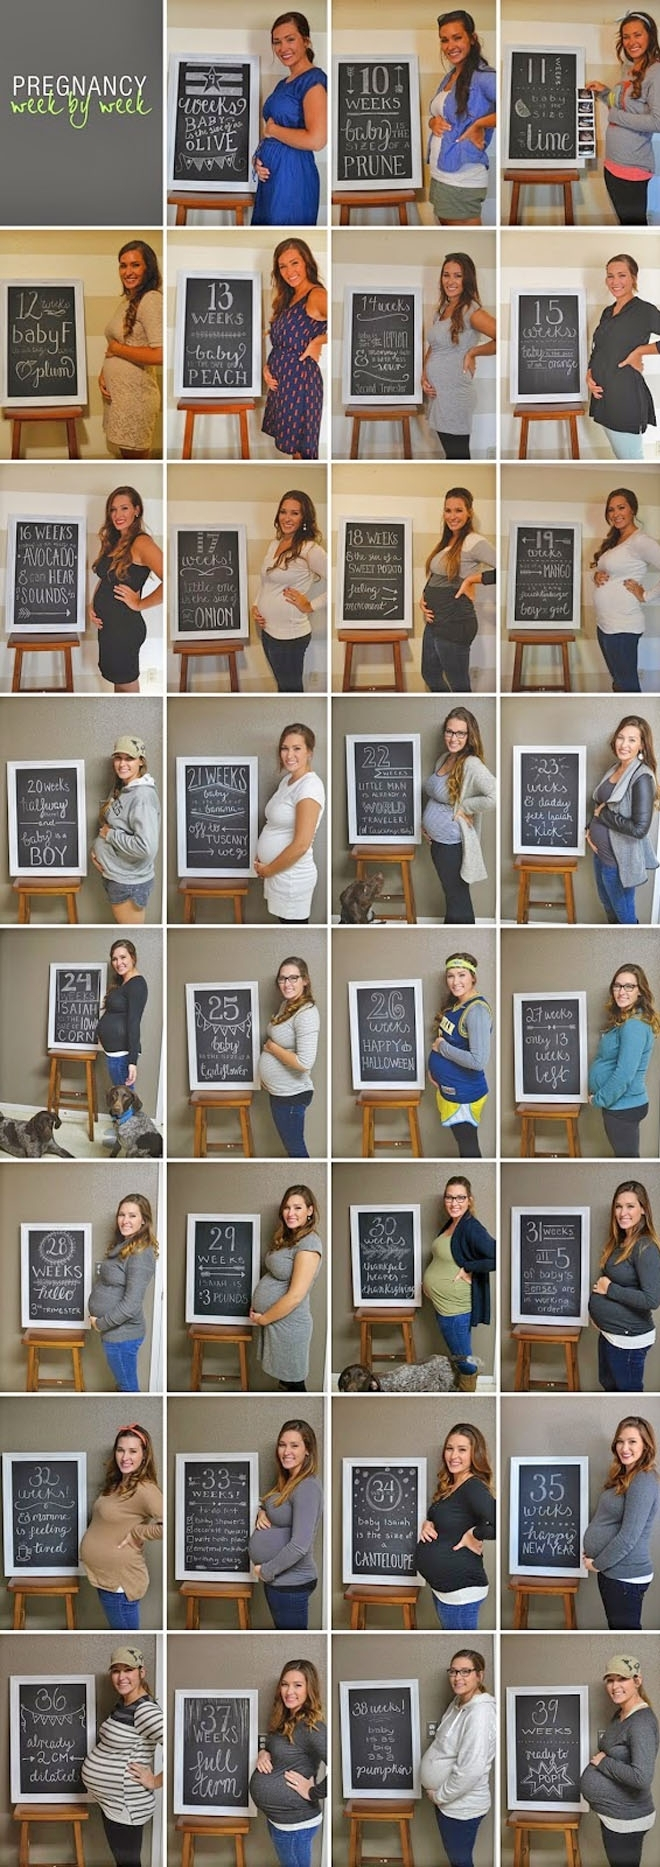 14 Weekly Photo Ideas To Take During Pregnancy | Mum's Grapevine in Pregnancy Photos Week By Week